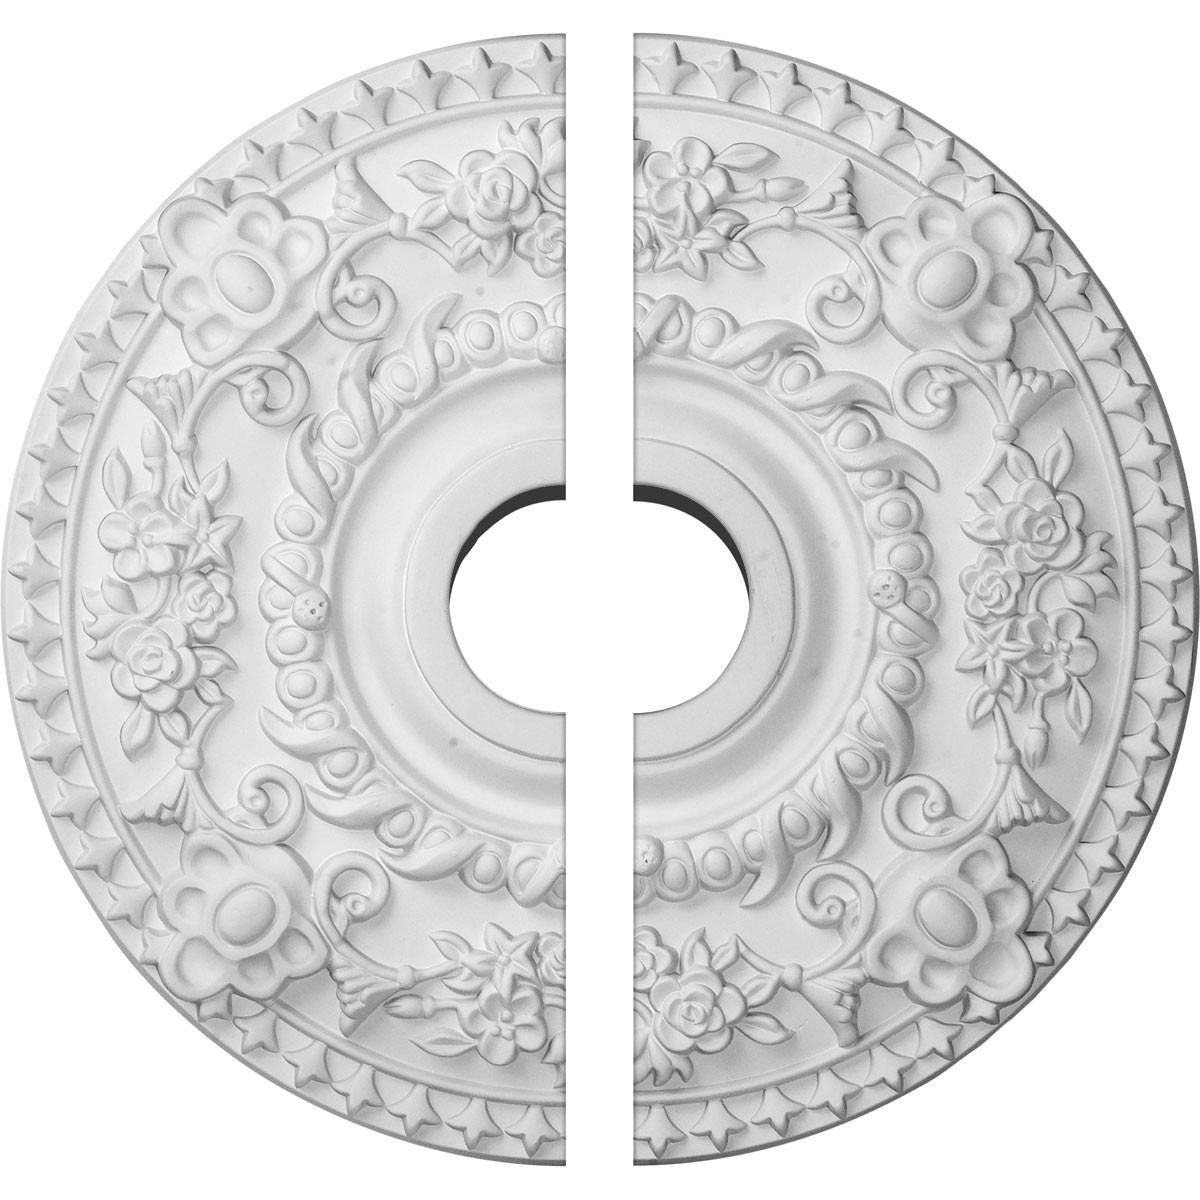 """EM-CM18RO2 - 18""""OD x 3 1/2""""ID x 1 1/2""""P Rose Ceiling Medallion, Two Piece (Fits Canopies up to 7 1/4"""")"""